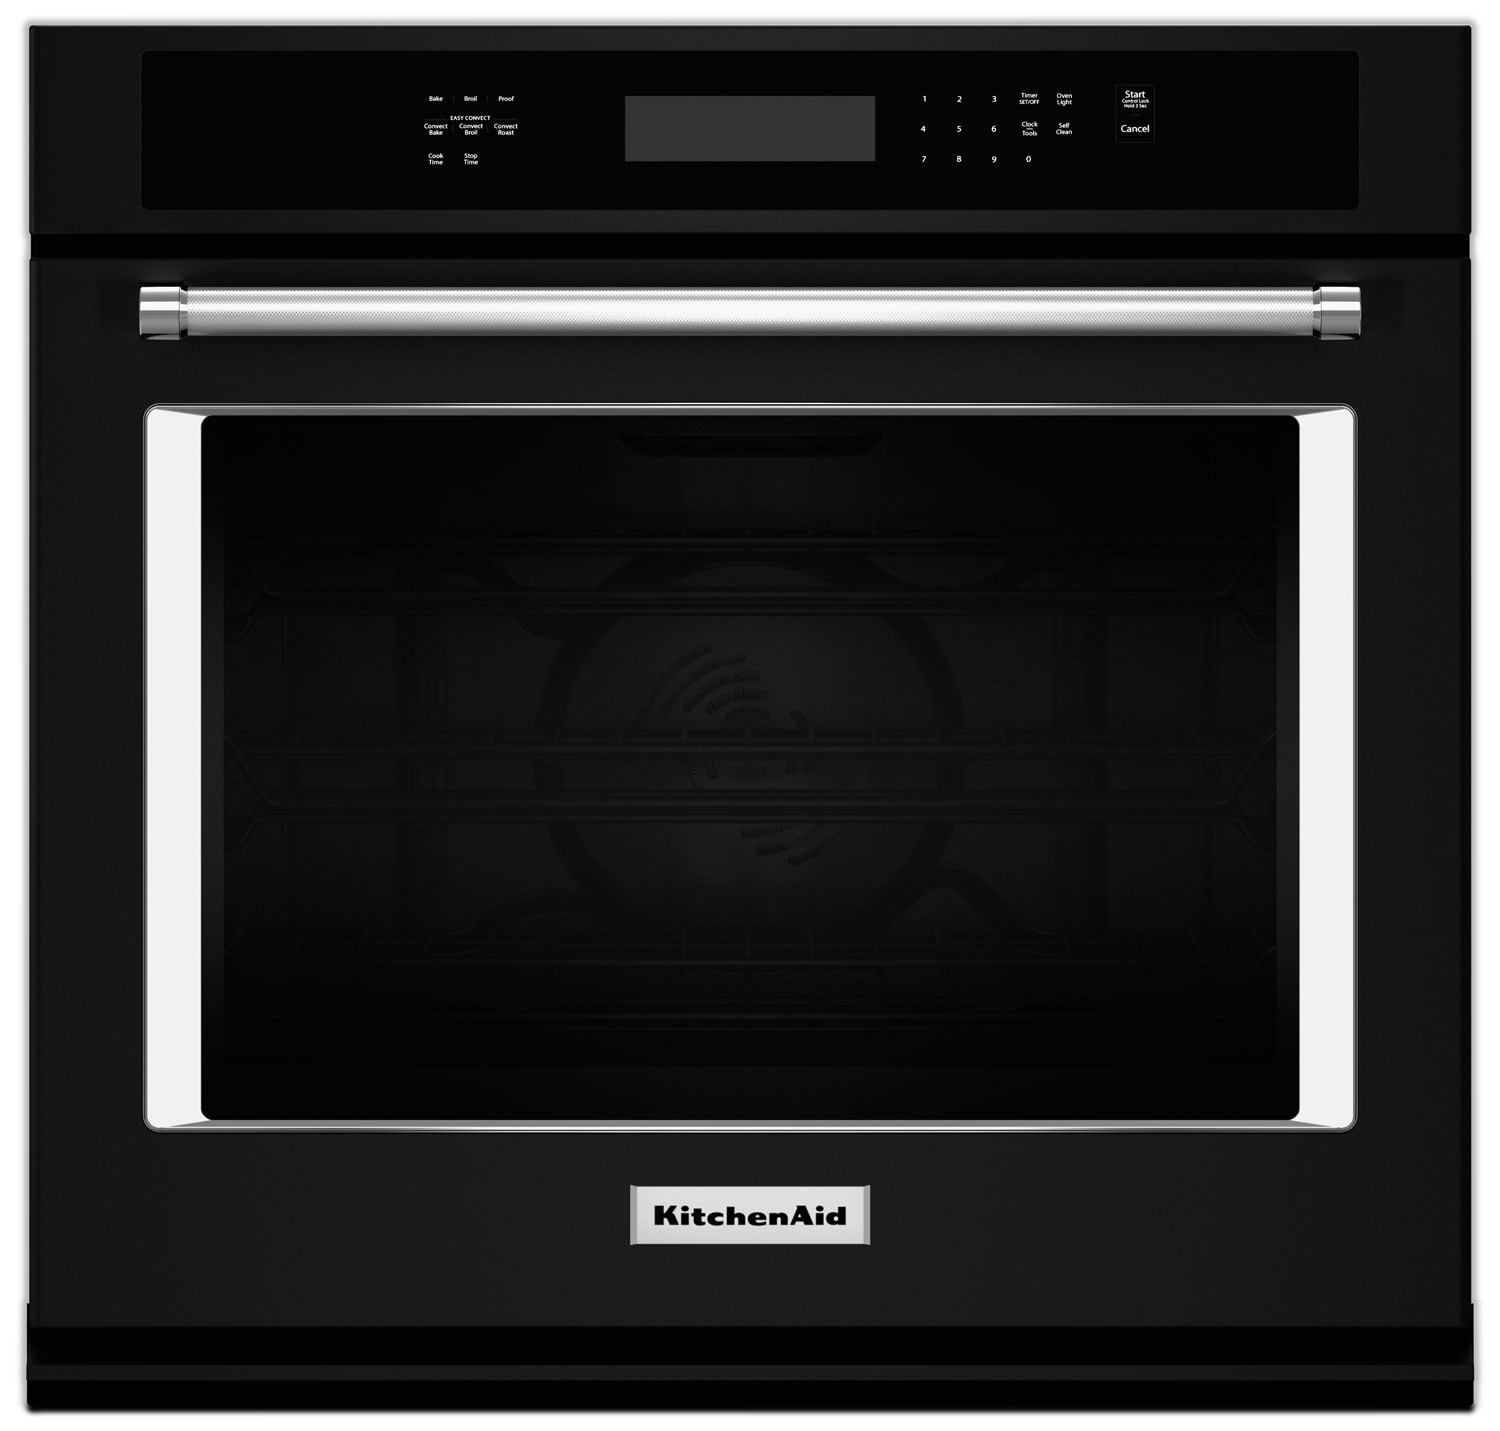 Cuisinières - Four mural simple KitchenAid de 4,3 pi³ à convection véritable Even-Heat(MC) - noir